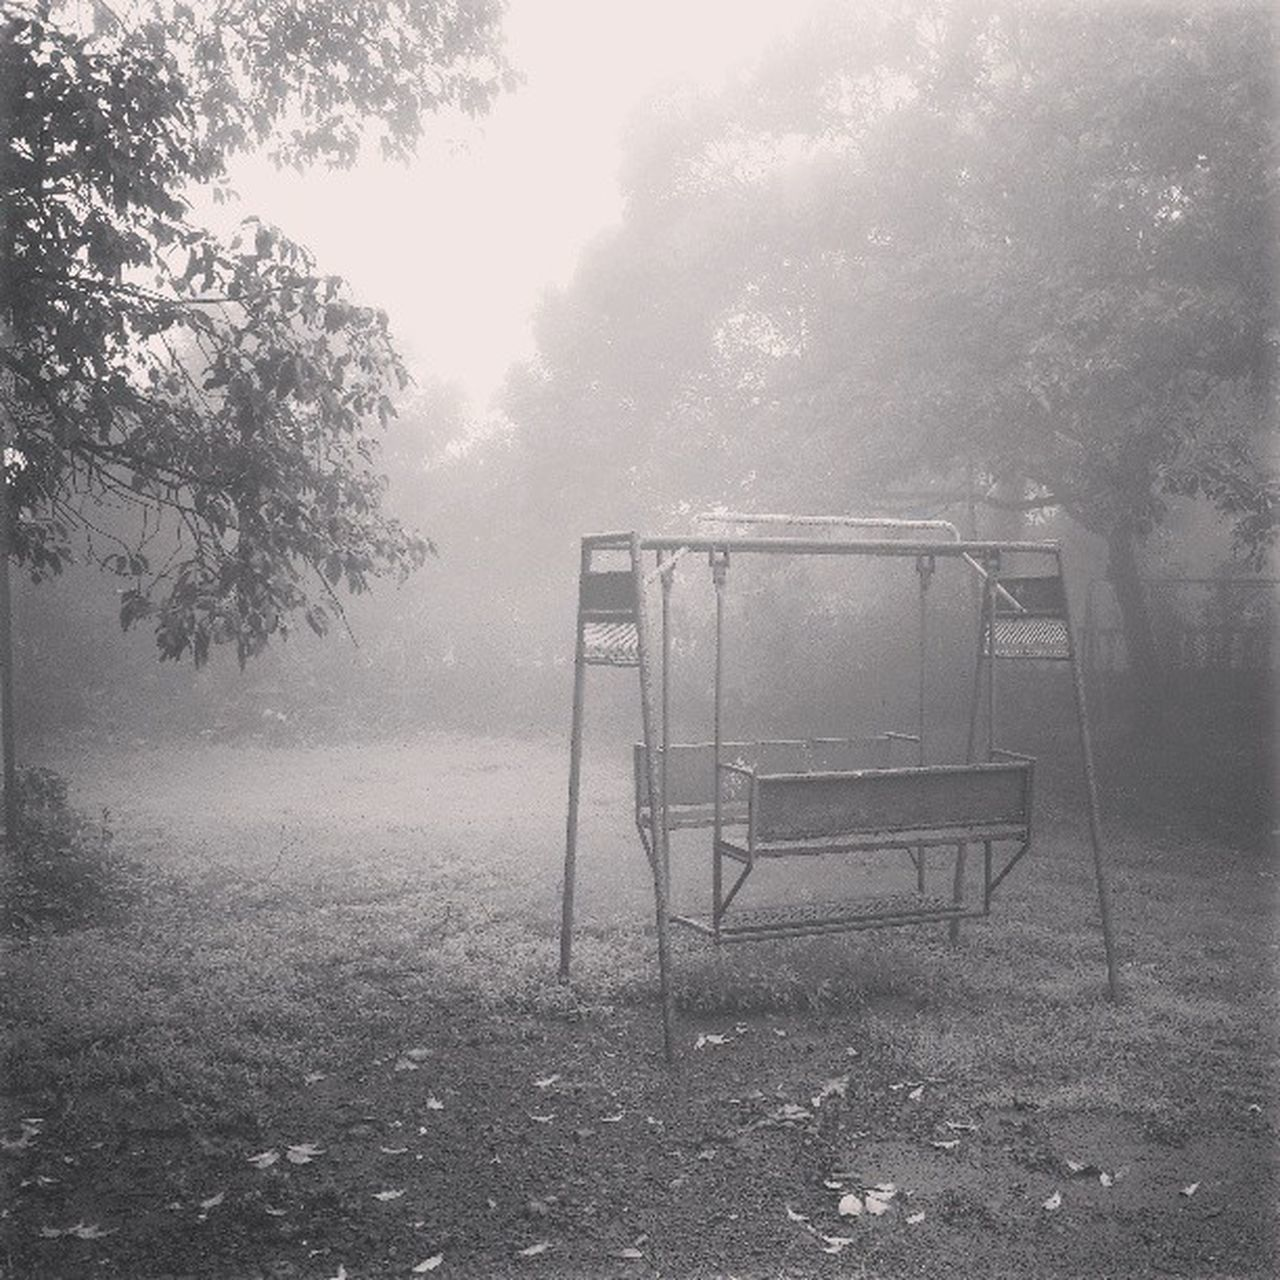 tree, fog, no people, day, nature, chair, landscape, outdoors, beauty in nature, sky